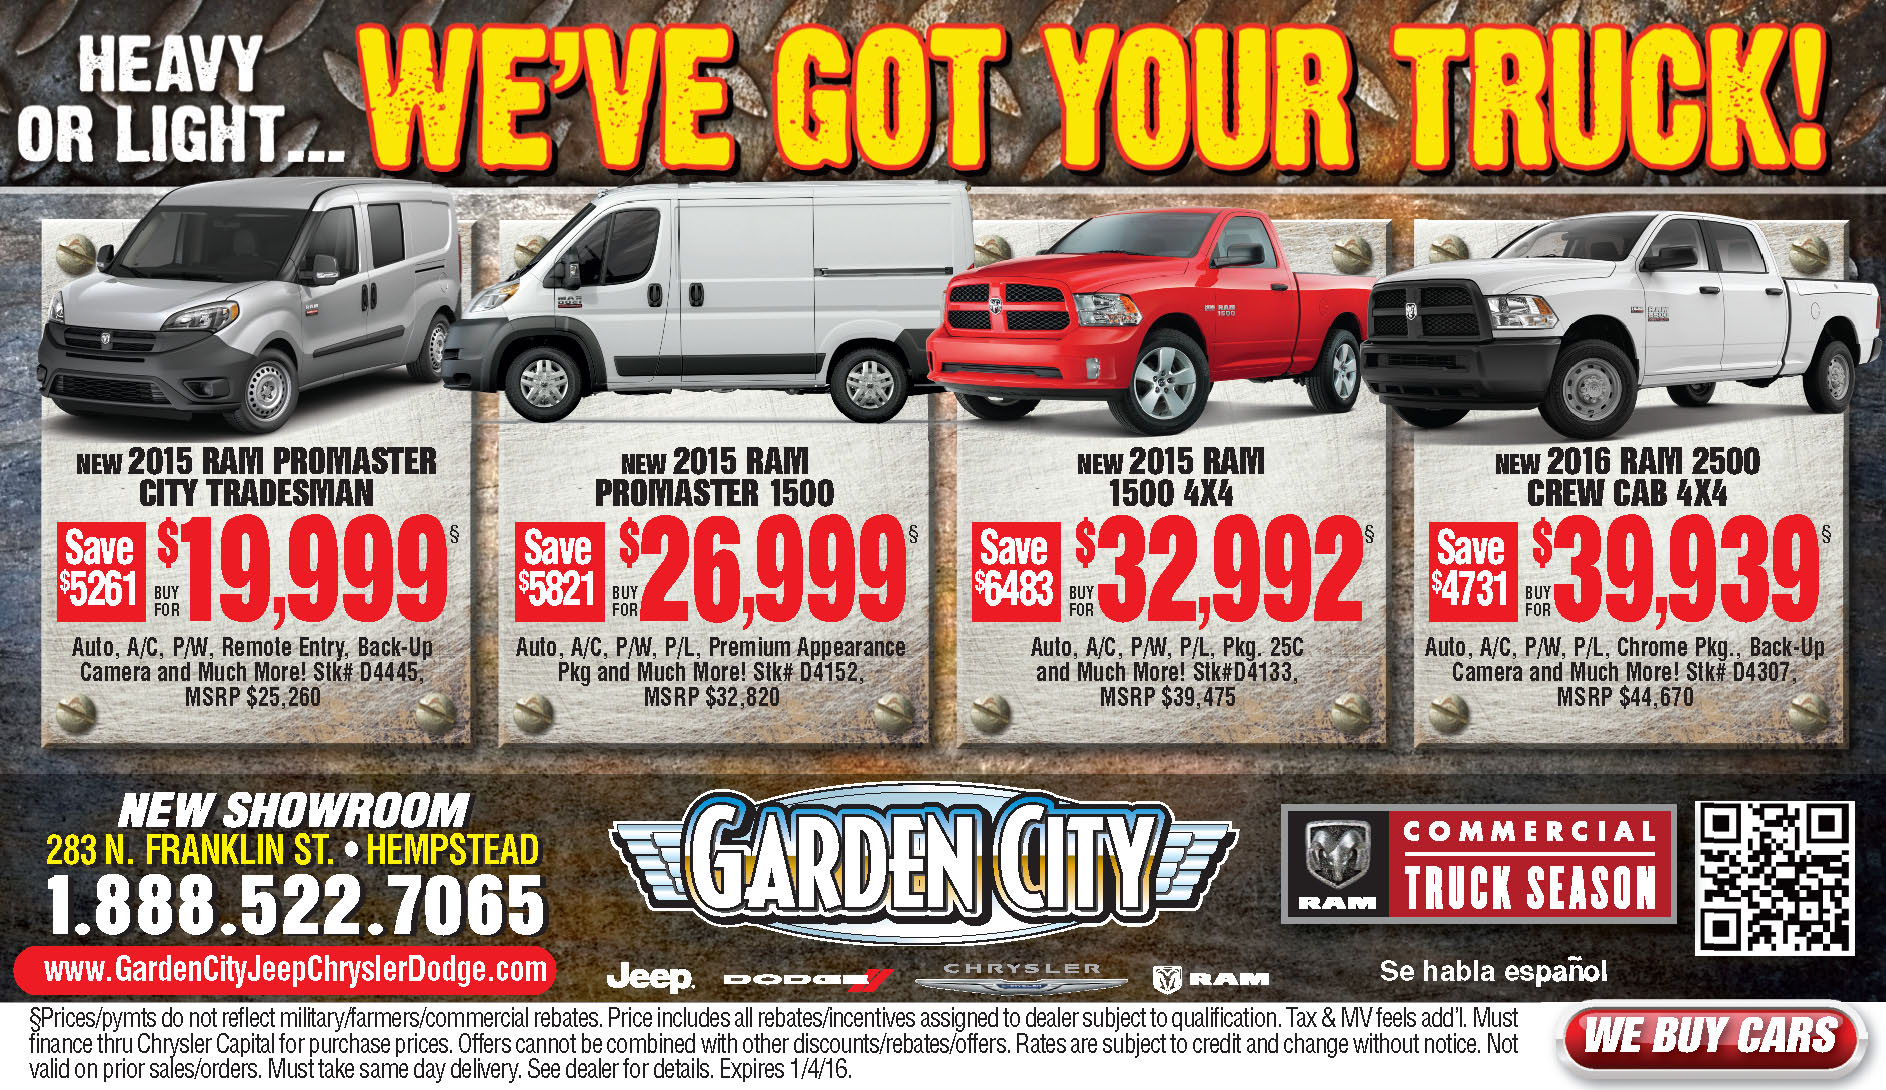 Garden City Chrysler